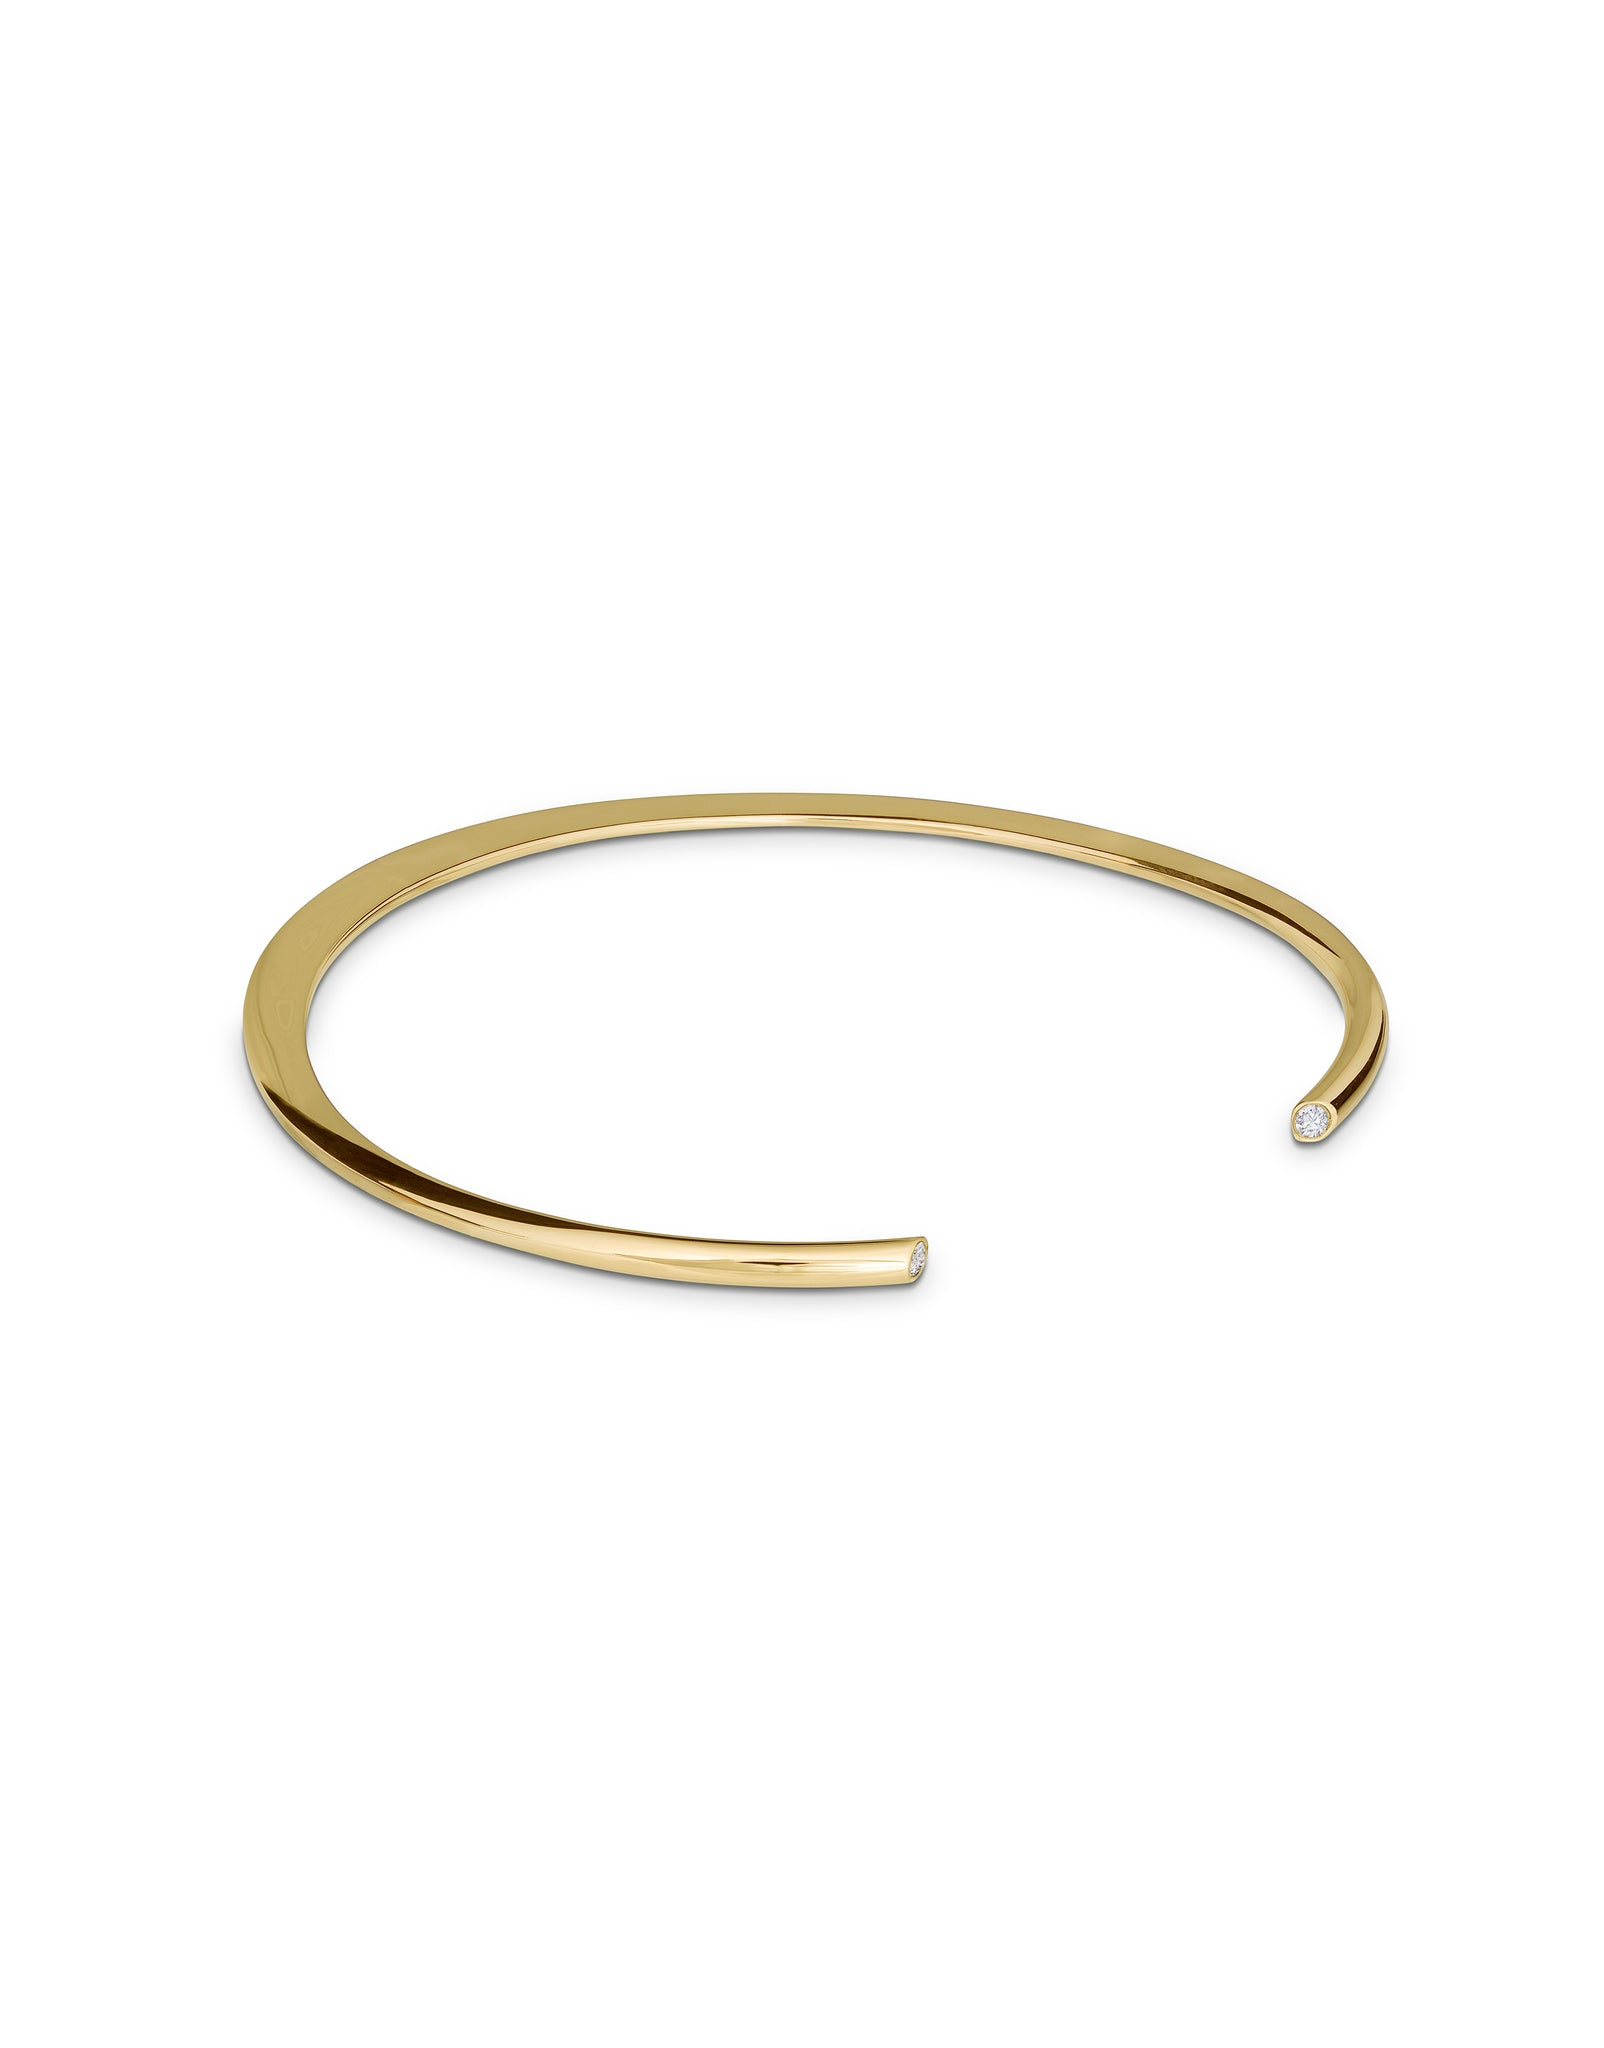 Bracelet 18K gold with diamonds - Full Moon bracelet diamonds - Nayestones